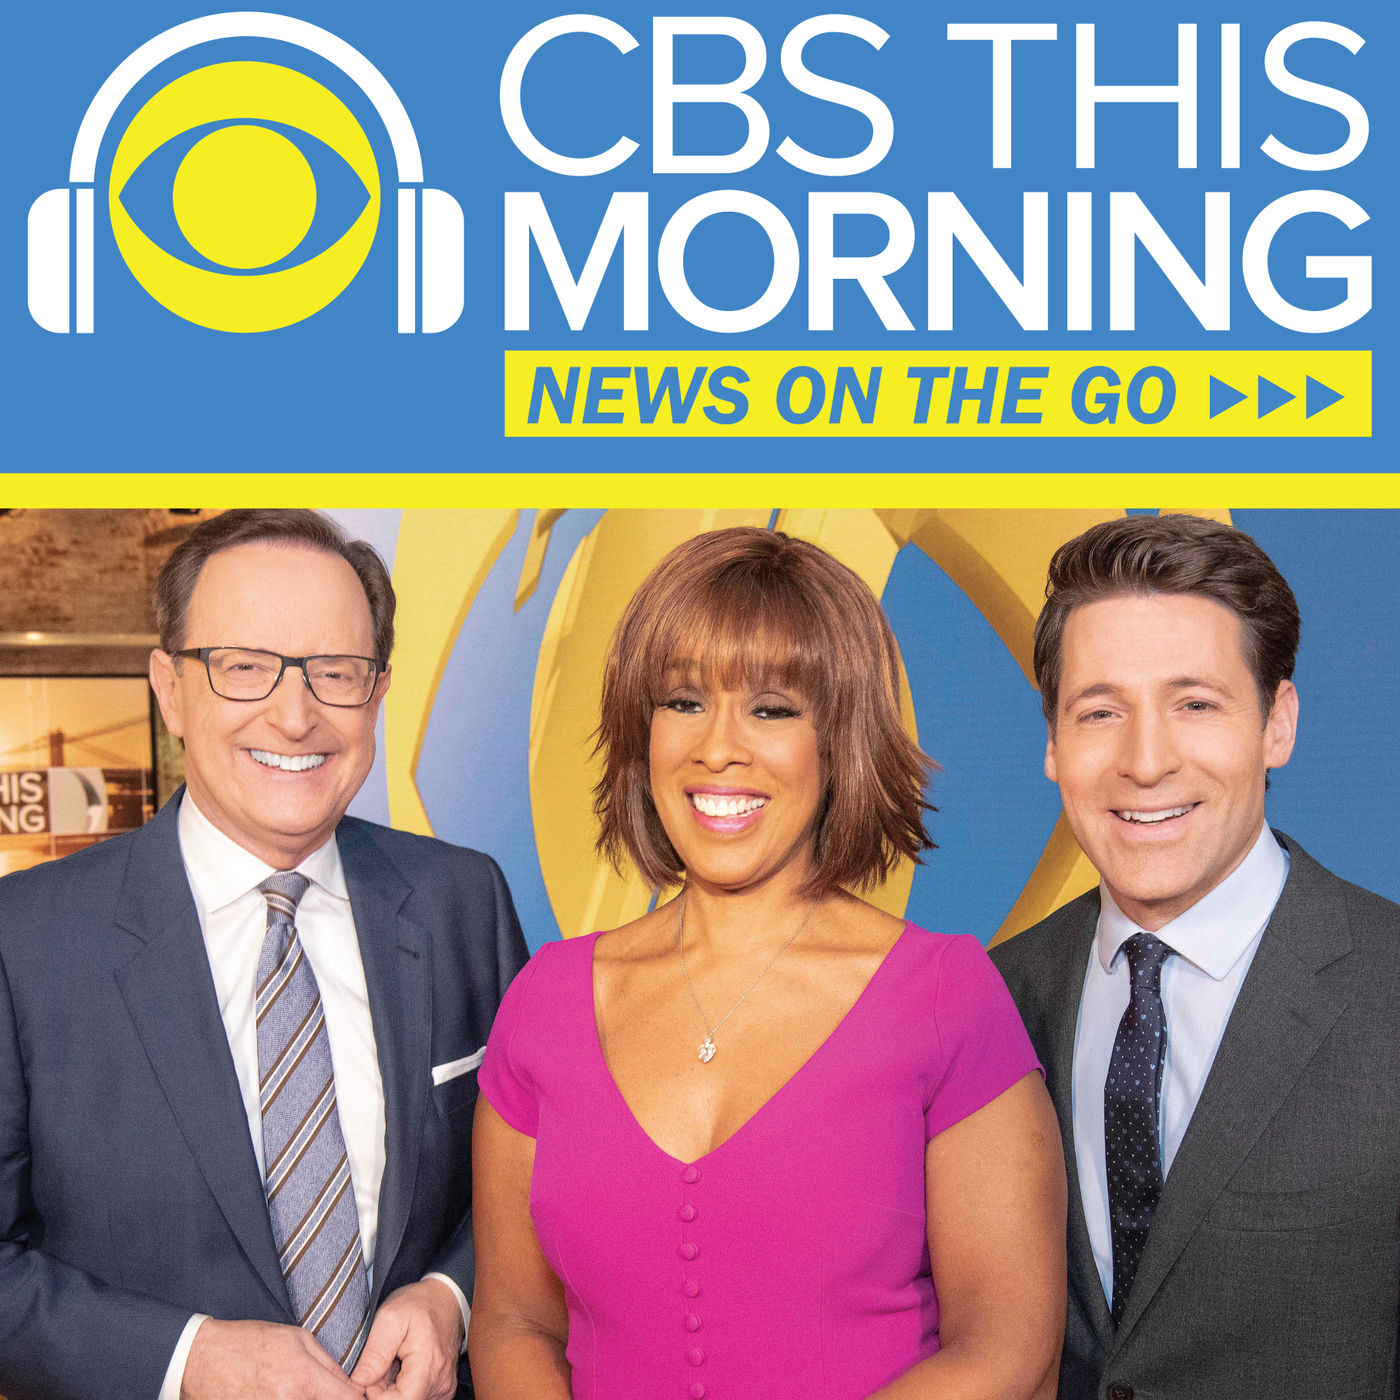 Cbs This Morning News On The Go